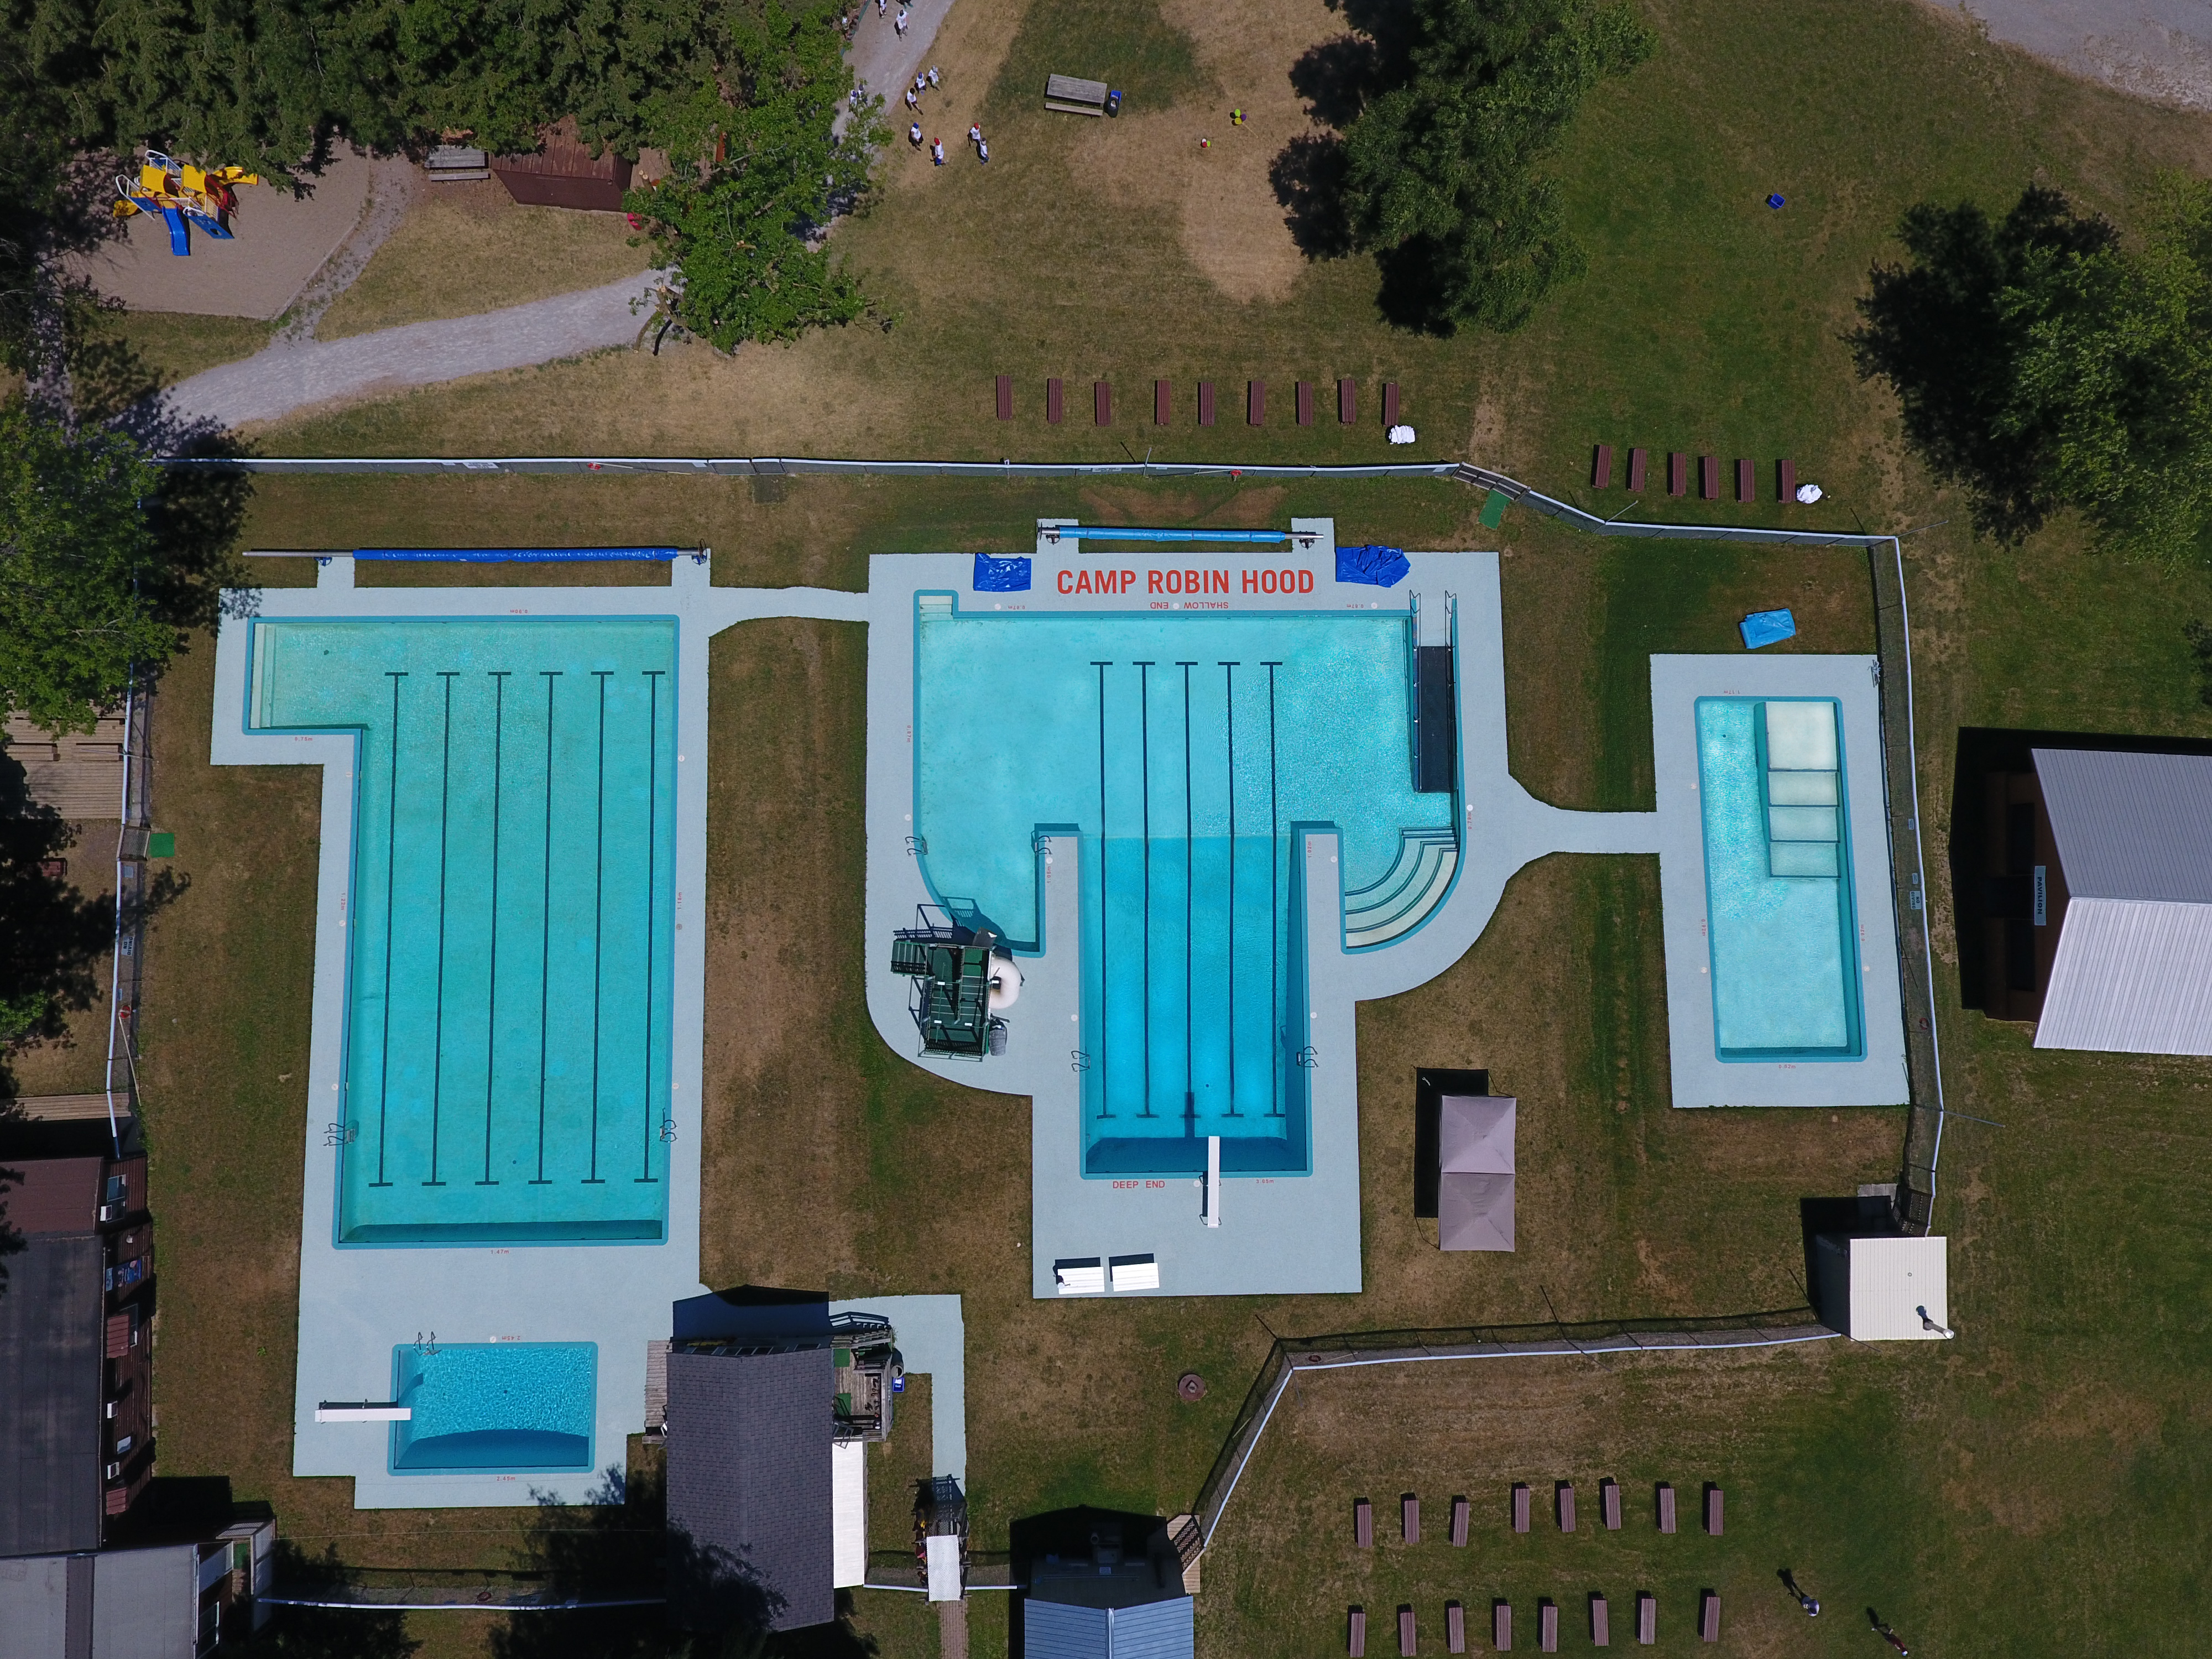 Aerial Photo of 4 heated swimming pools at the oldest and largest day camp in Canada, Camp Robin Hood